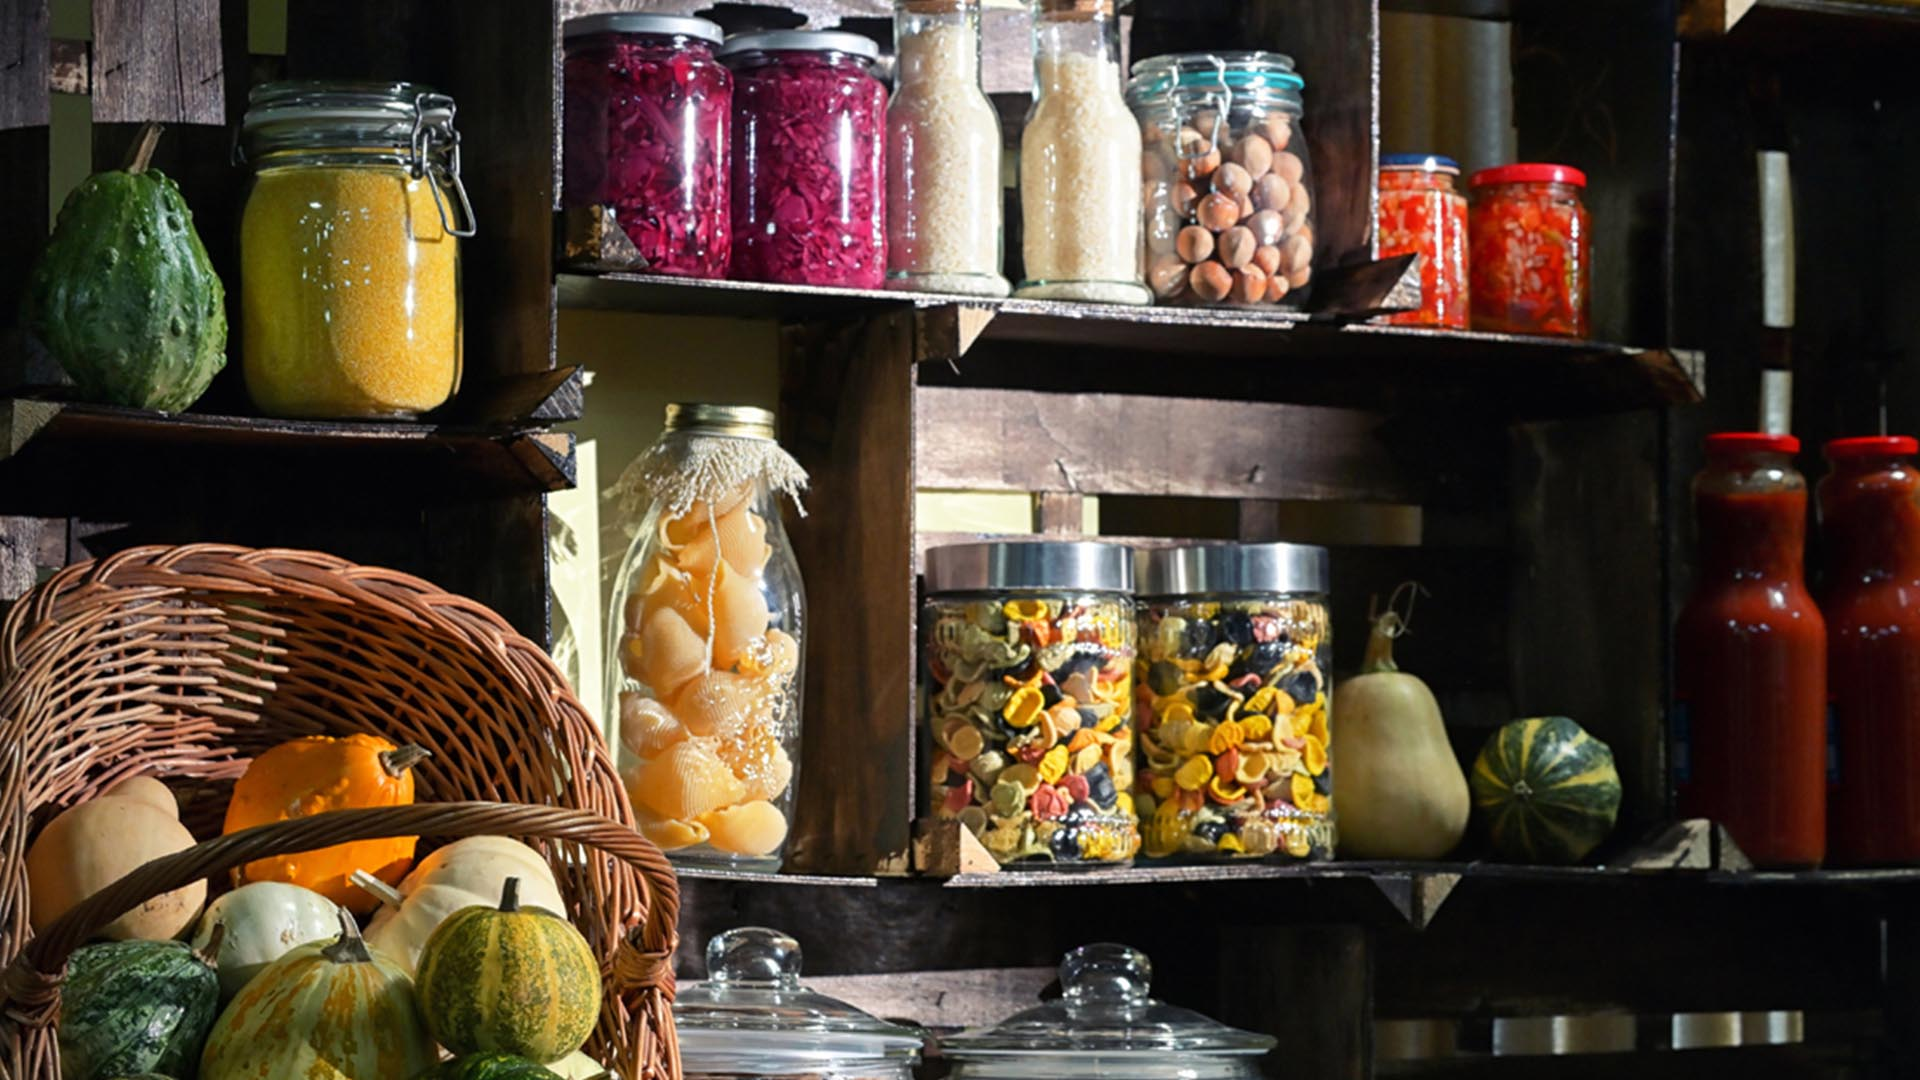 Dark wooden shelved pantry shelving full of glass jars of various local, fresh spices and dried and fresh foods including pasta, squash, beets, rice, candies and walnuts.